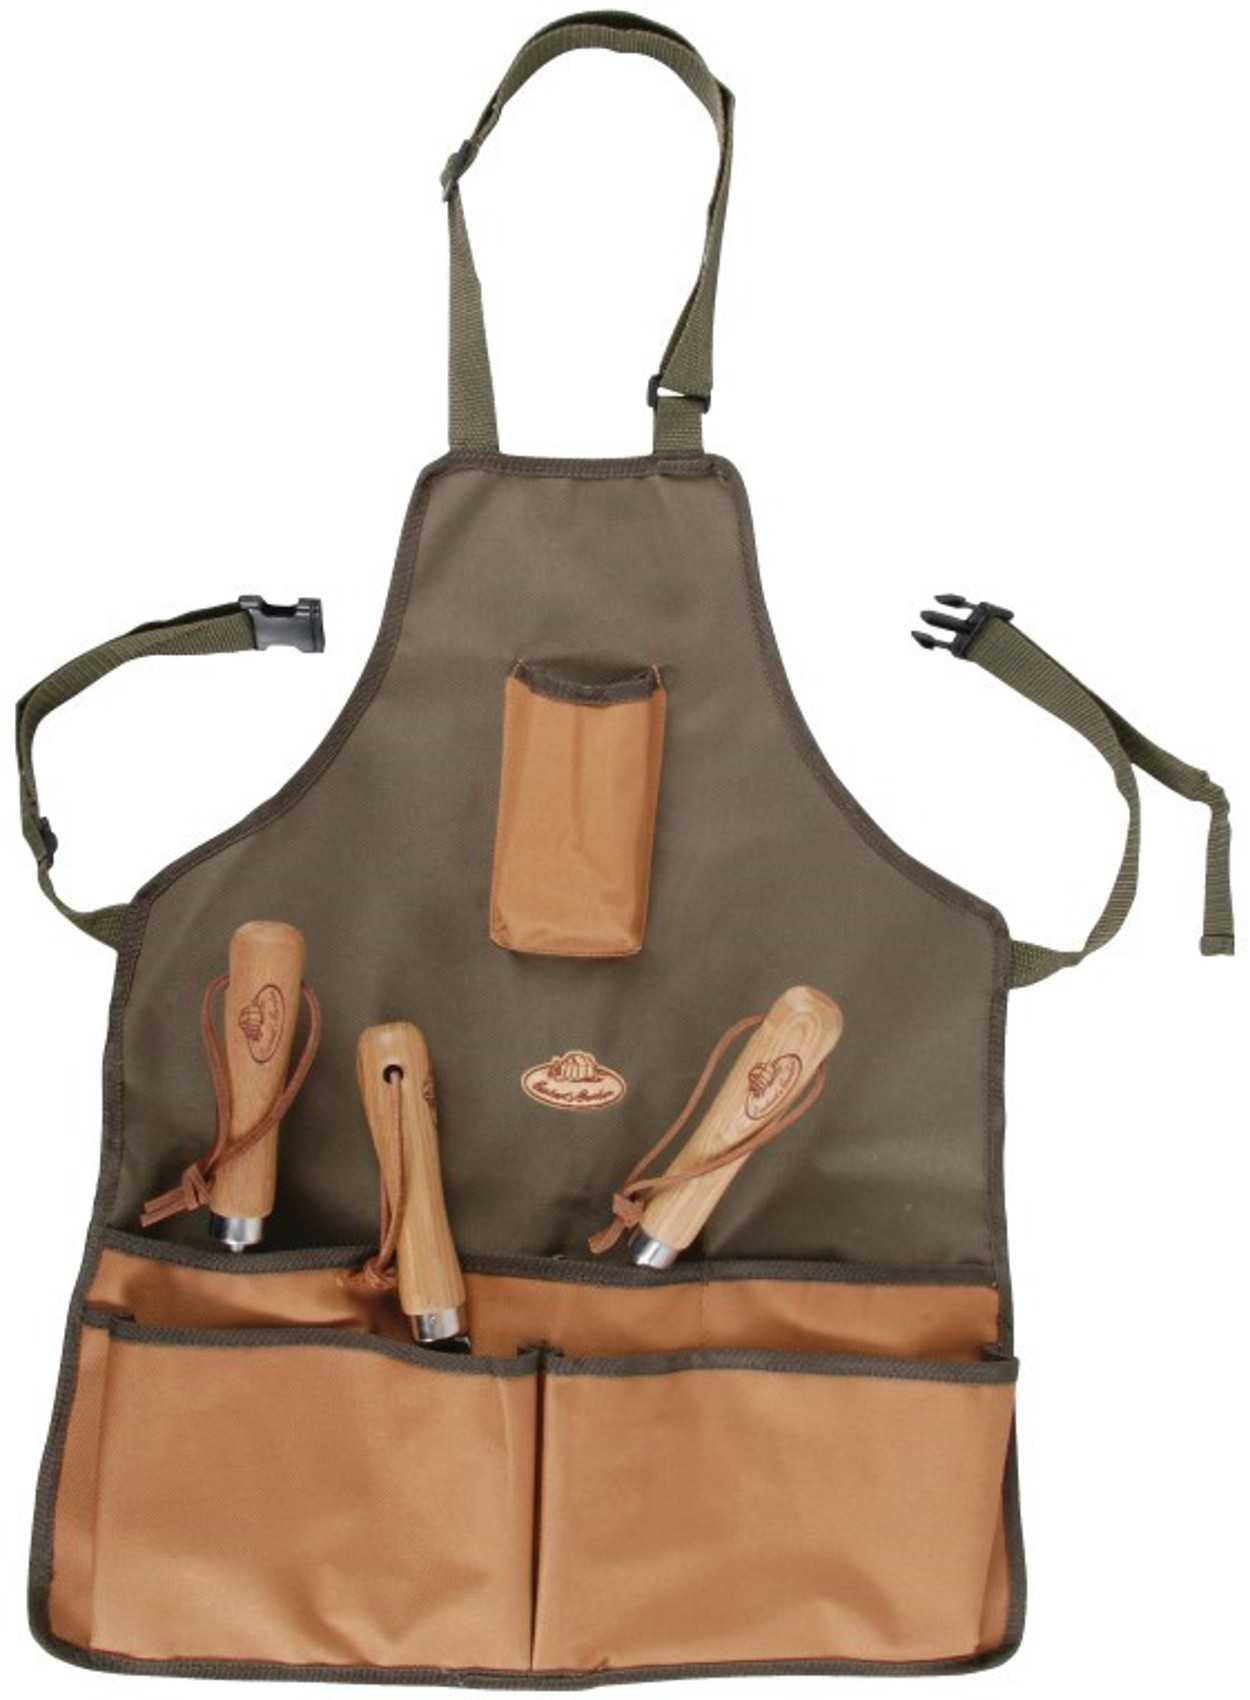 Durable Outdoor Gardening Tool Apron Adjustable 5 Pockets (Khaki & Brown)